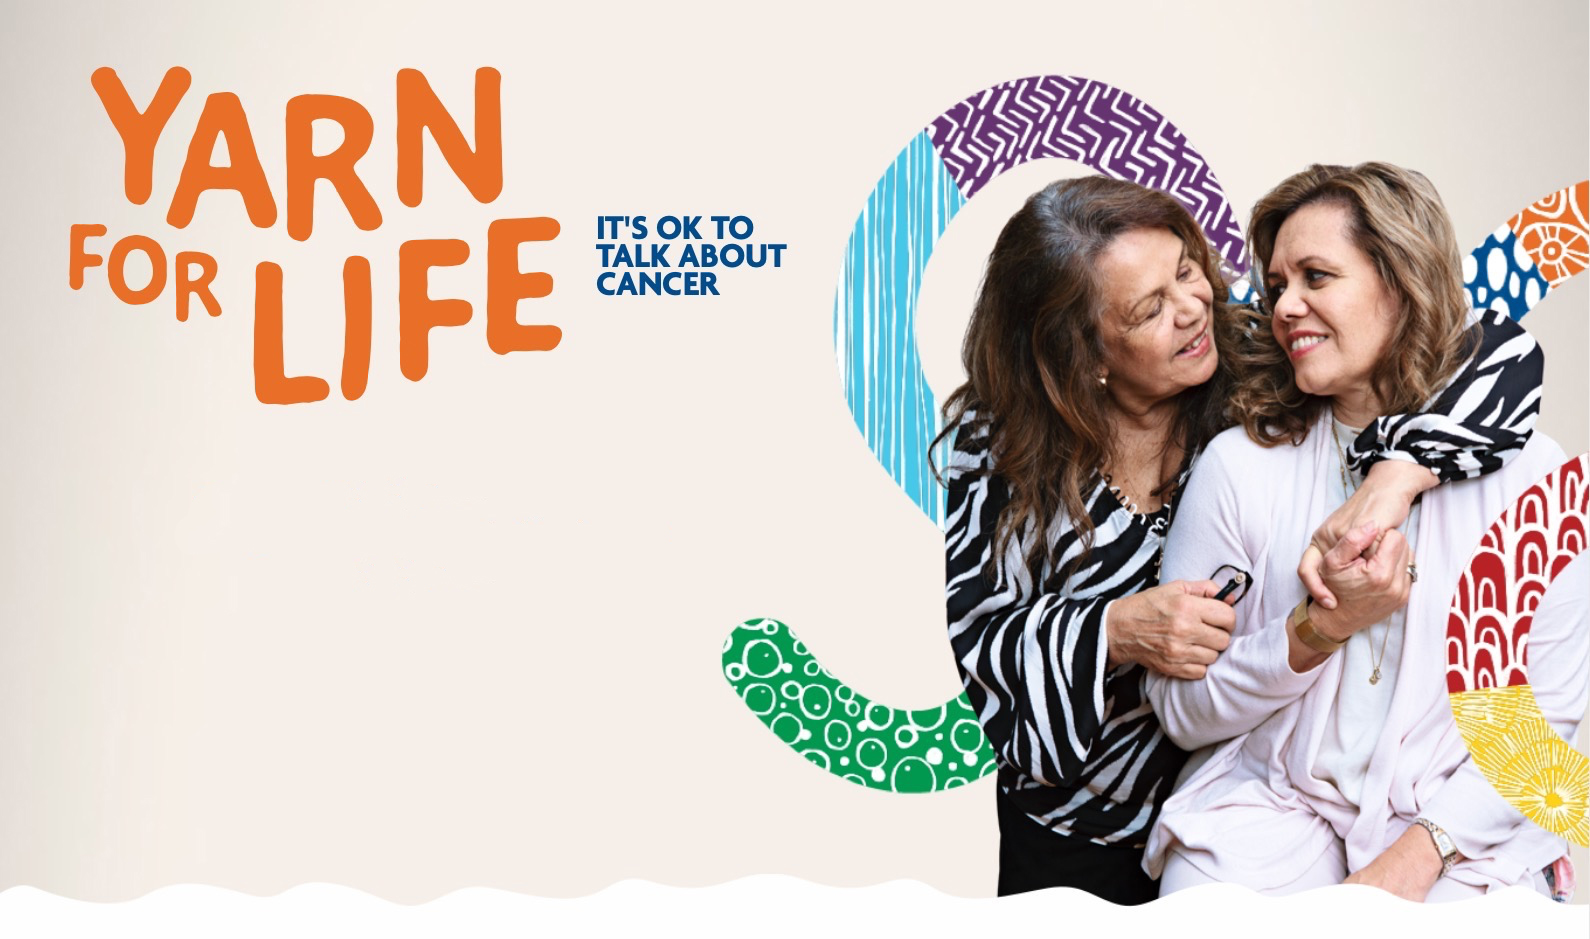 Yarn for Life - thefirst national cancer awareness campaign developed for and by Aboriginal and Torres Strait Islander people